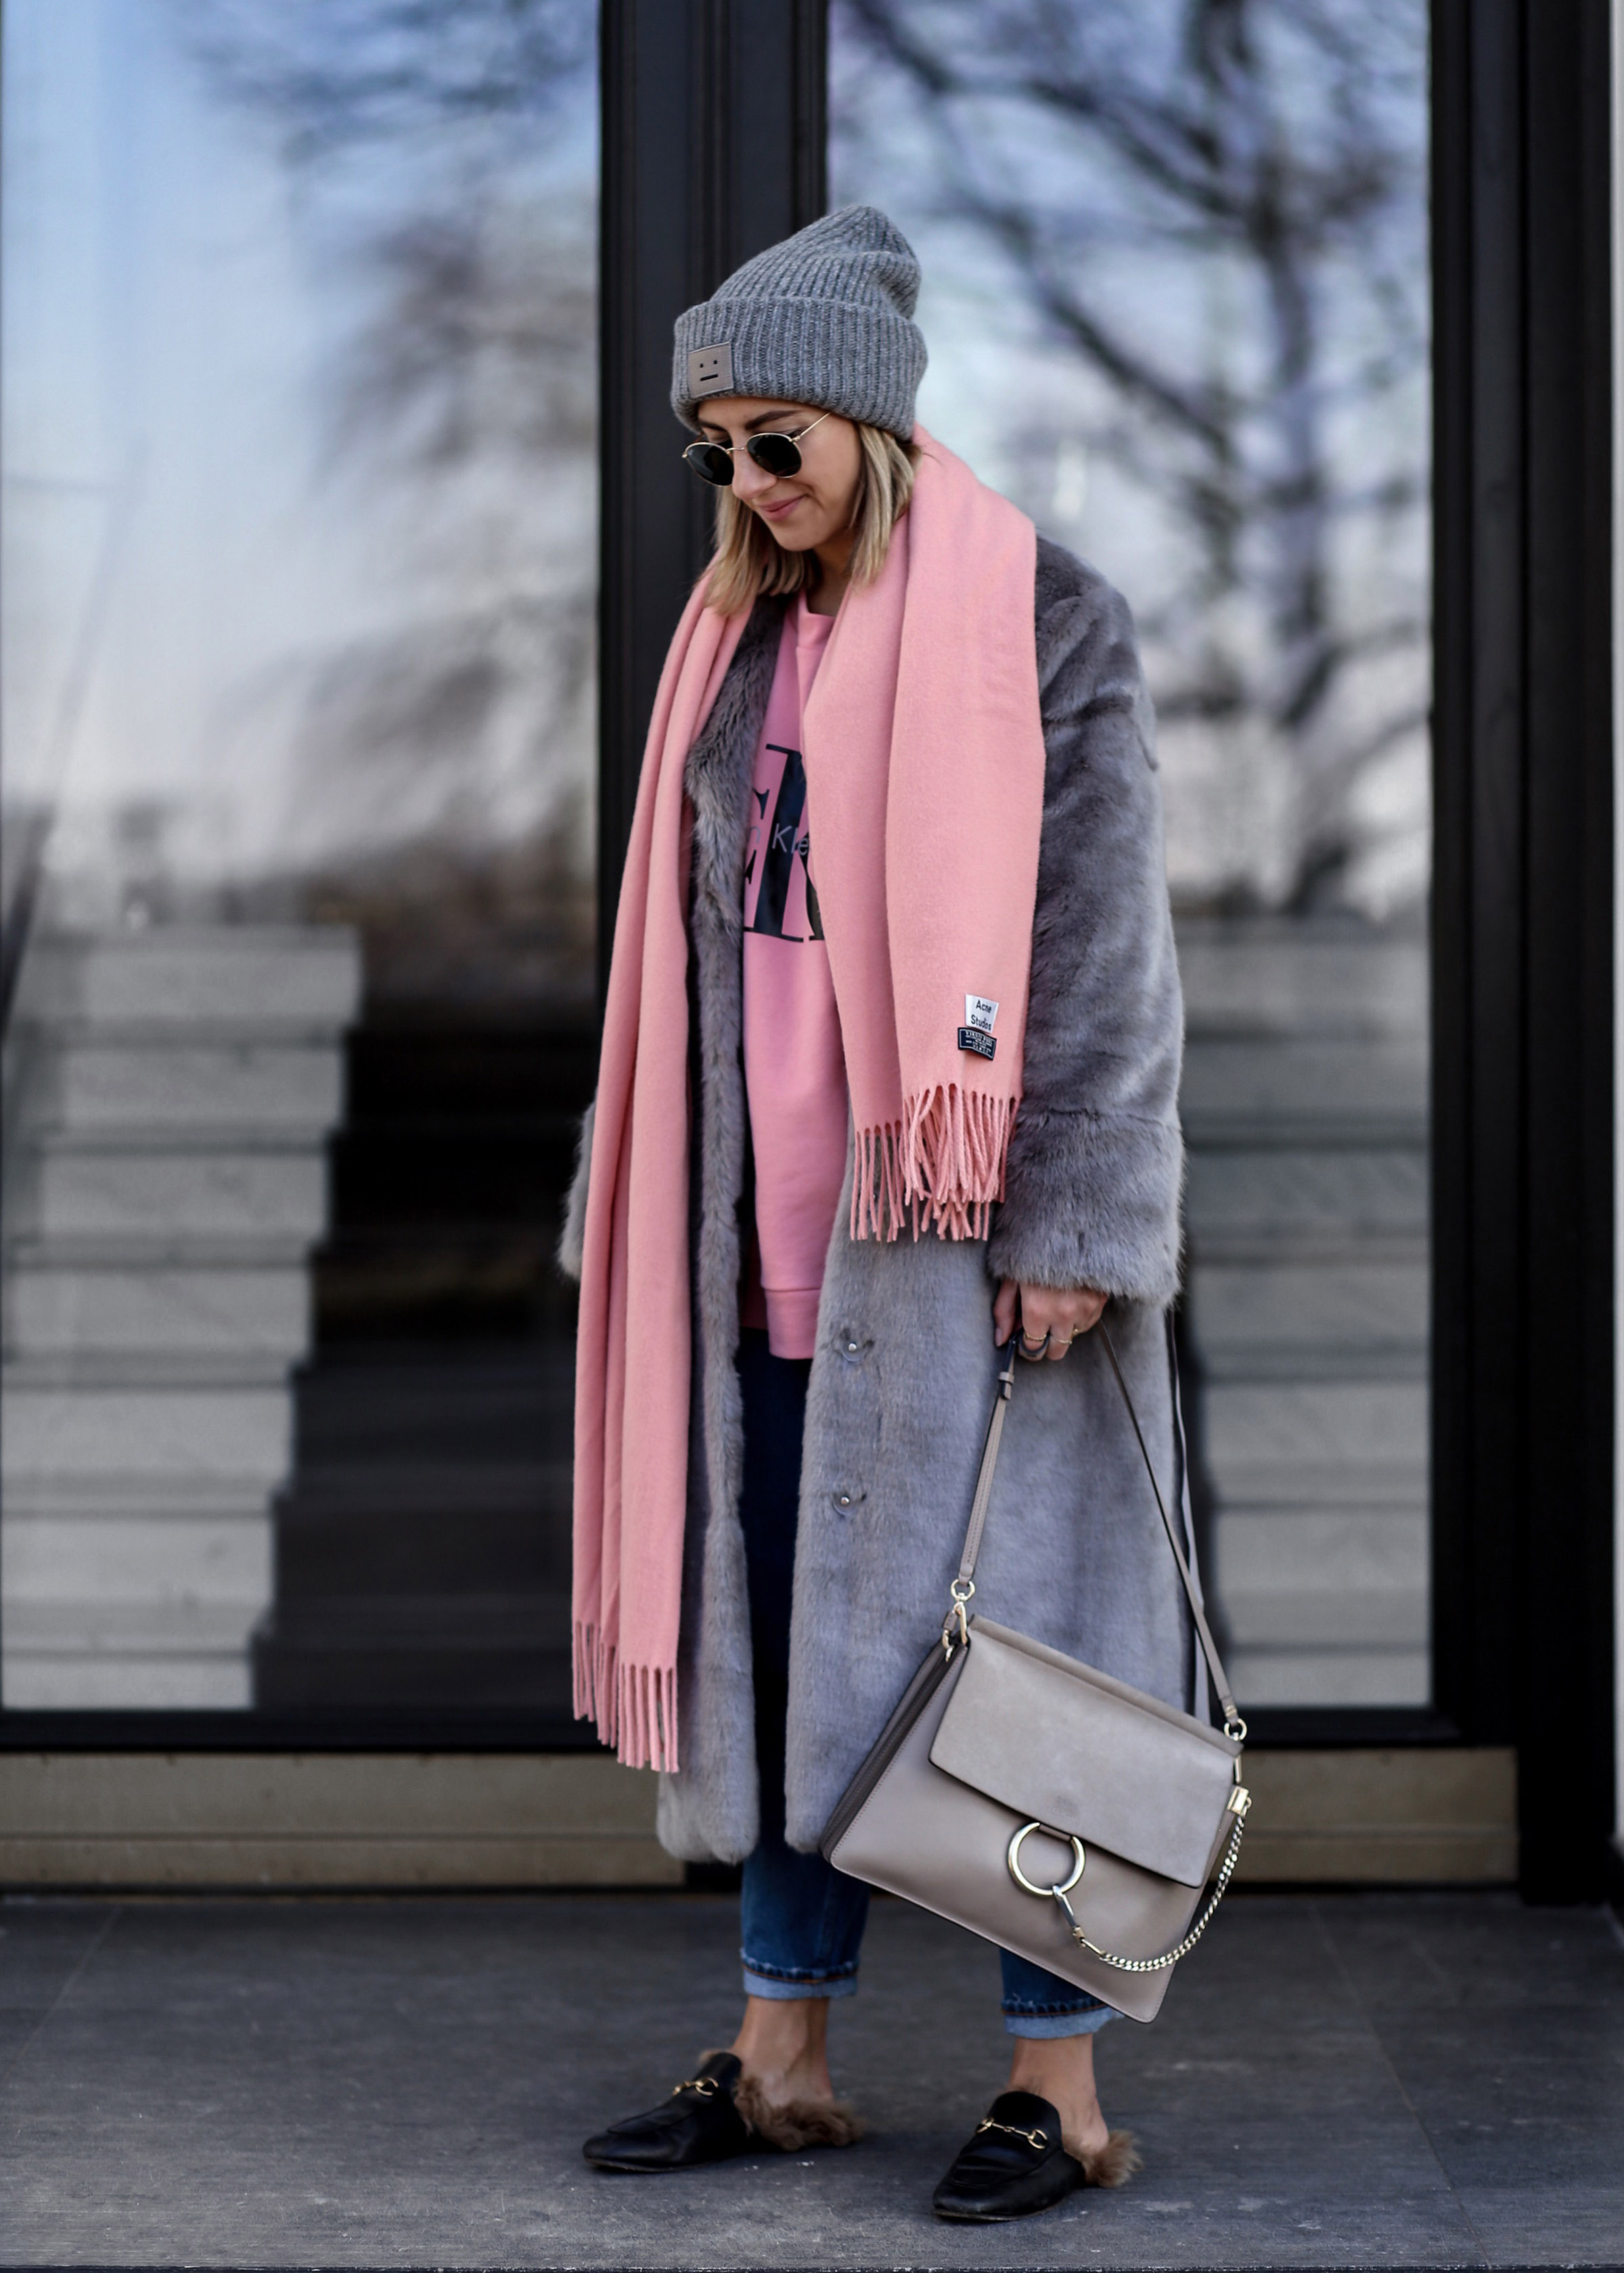 grey_fur_coat_asos_chloe_gucci